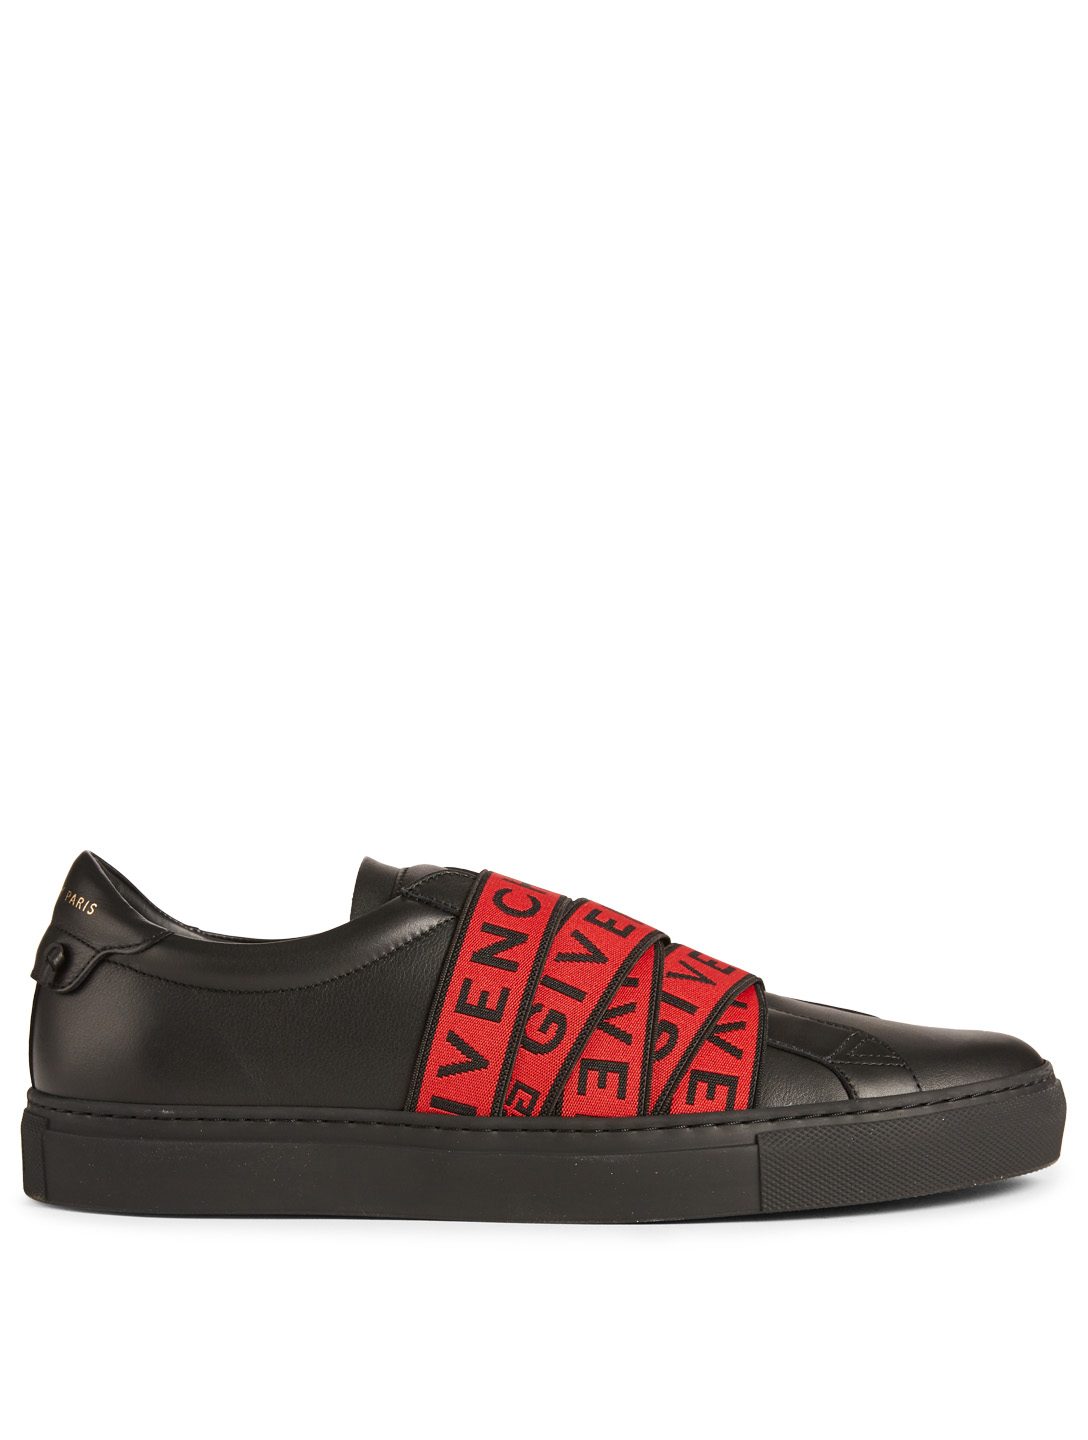 GIVENCHY 4G Webbing Leather Sneakers Men's Black